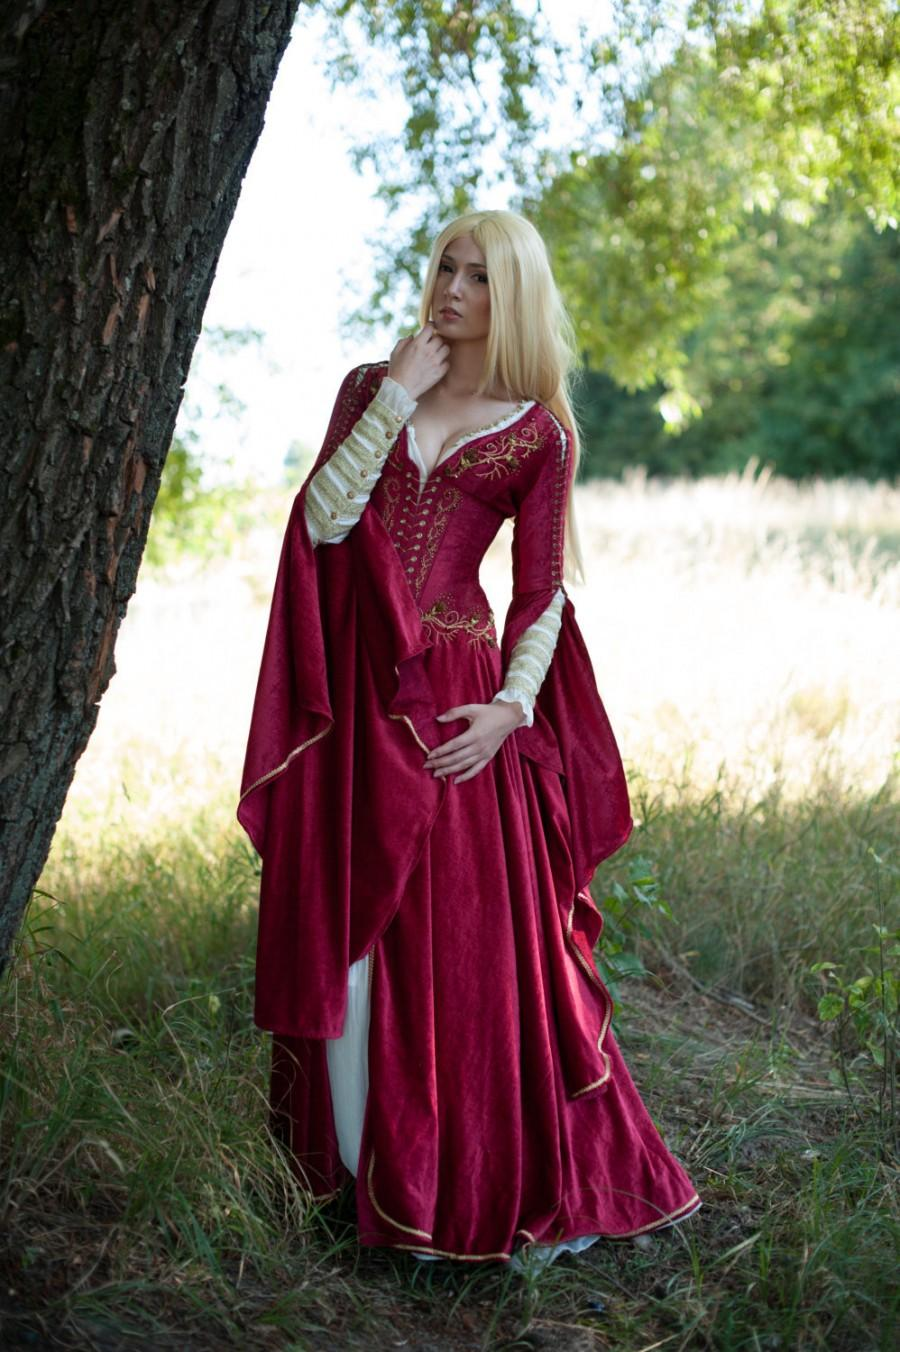 Hochzeit - Fantasy Dress, Cersei gown, Elven wedding dress, Renaissance faire dress, Made to order from another fabric